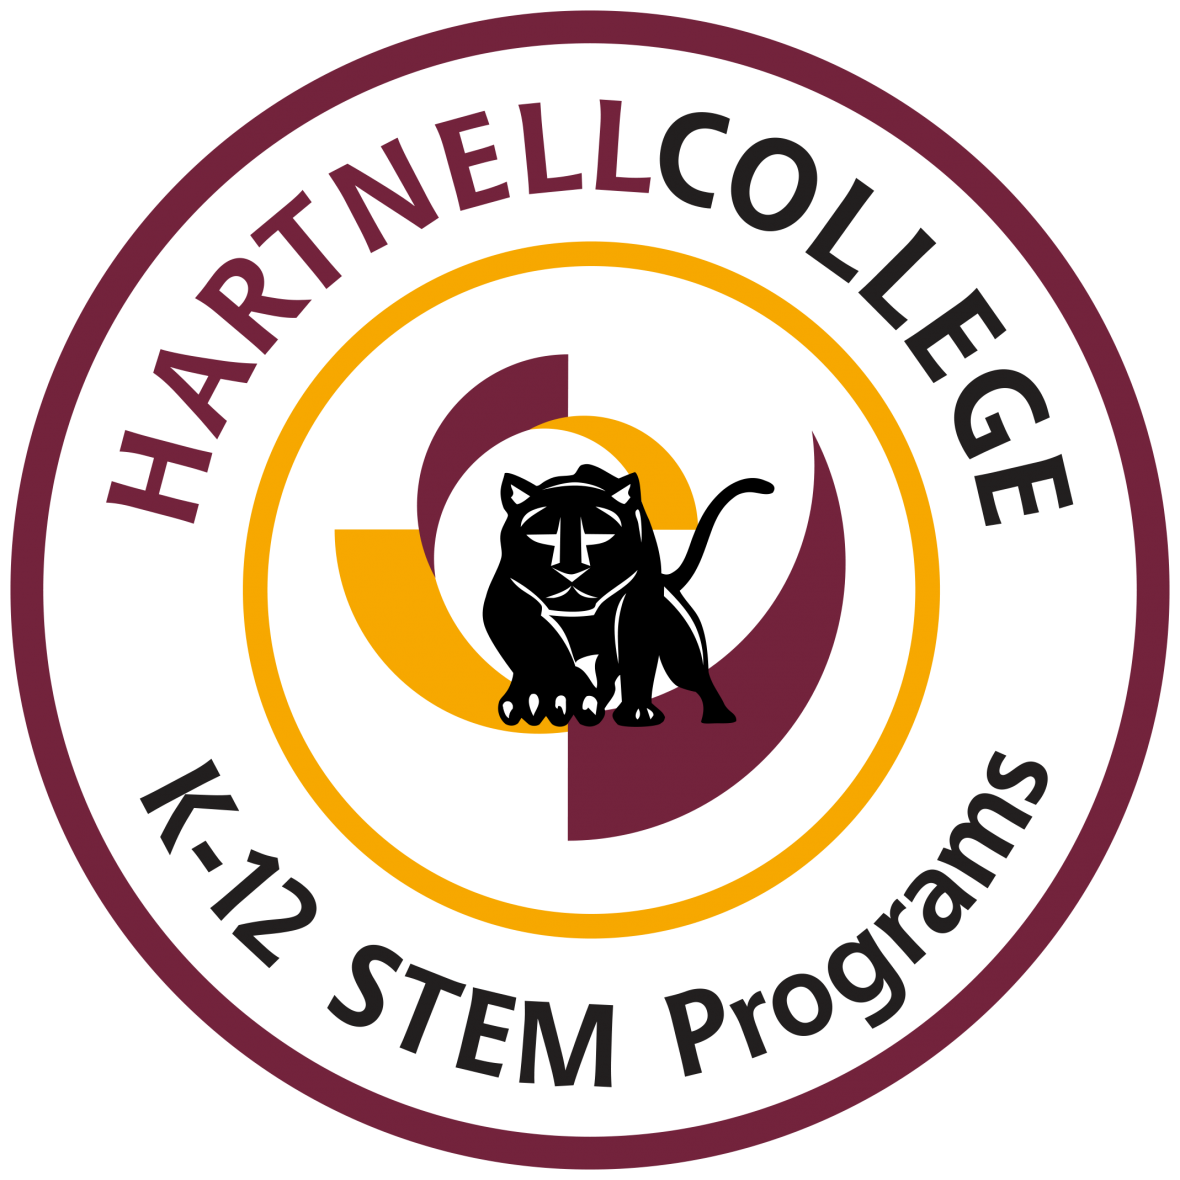 Hartnell K-12 Stem logo